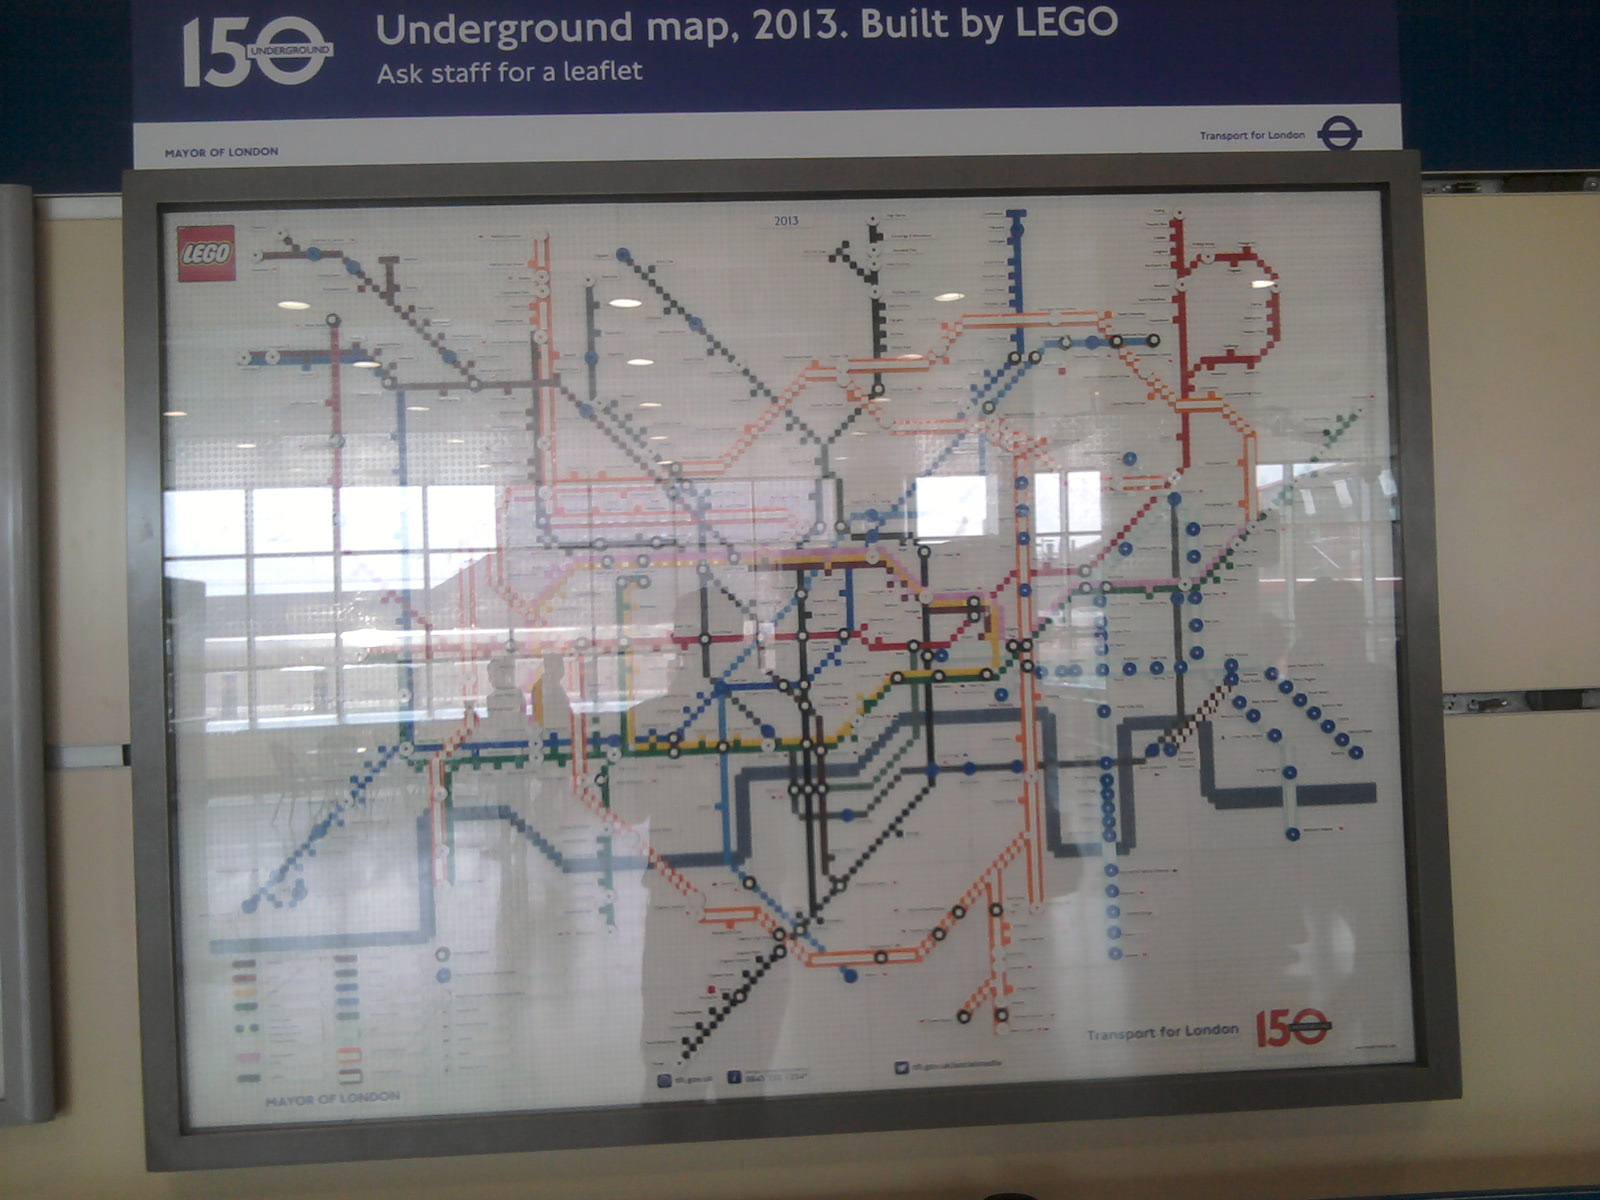 LEGO 2013 Underground map at Stratford Station